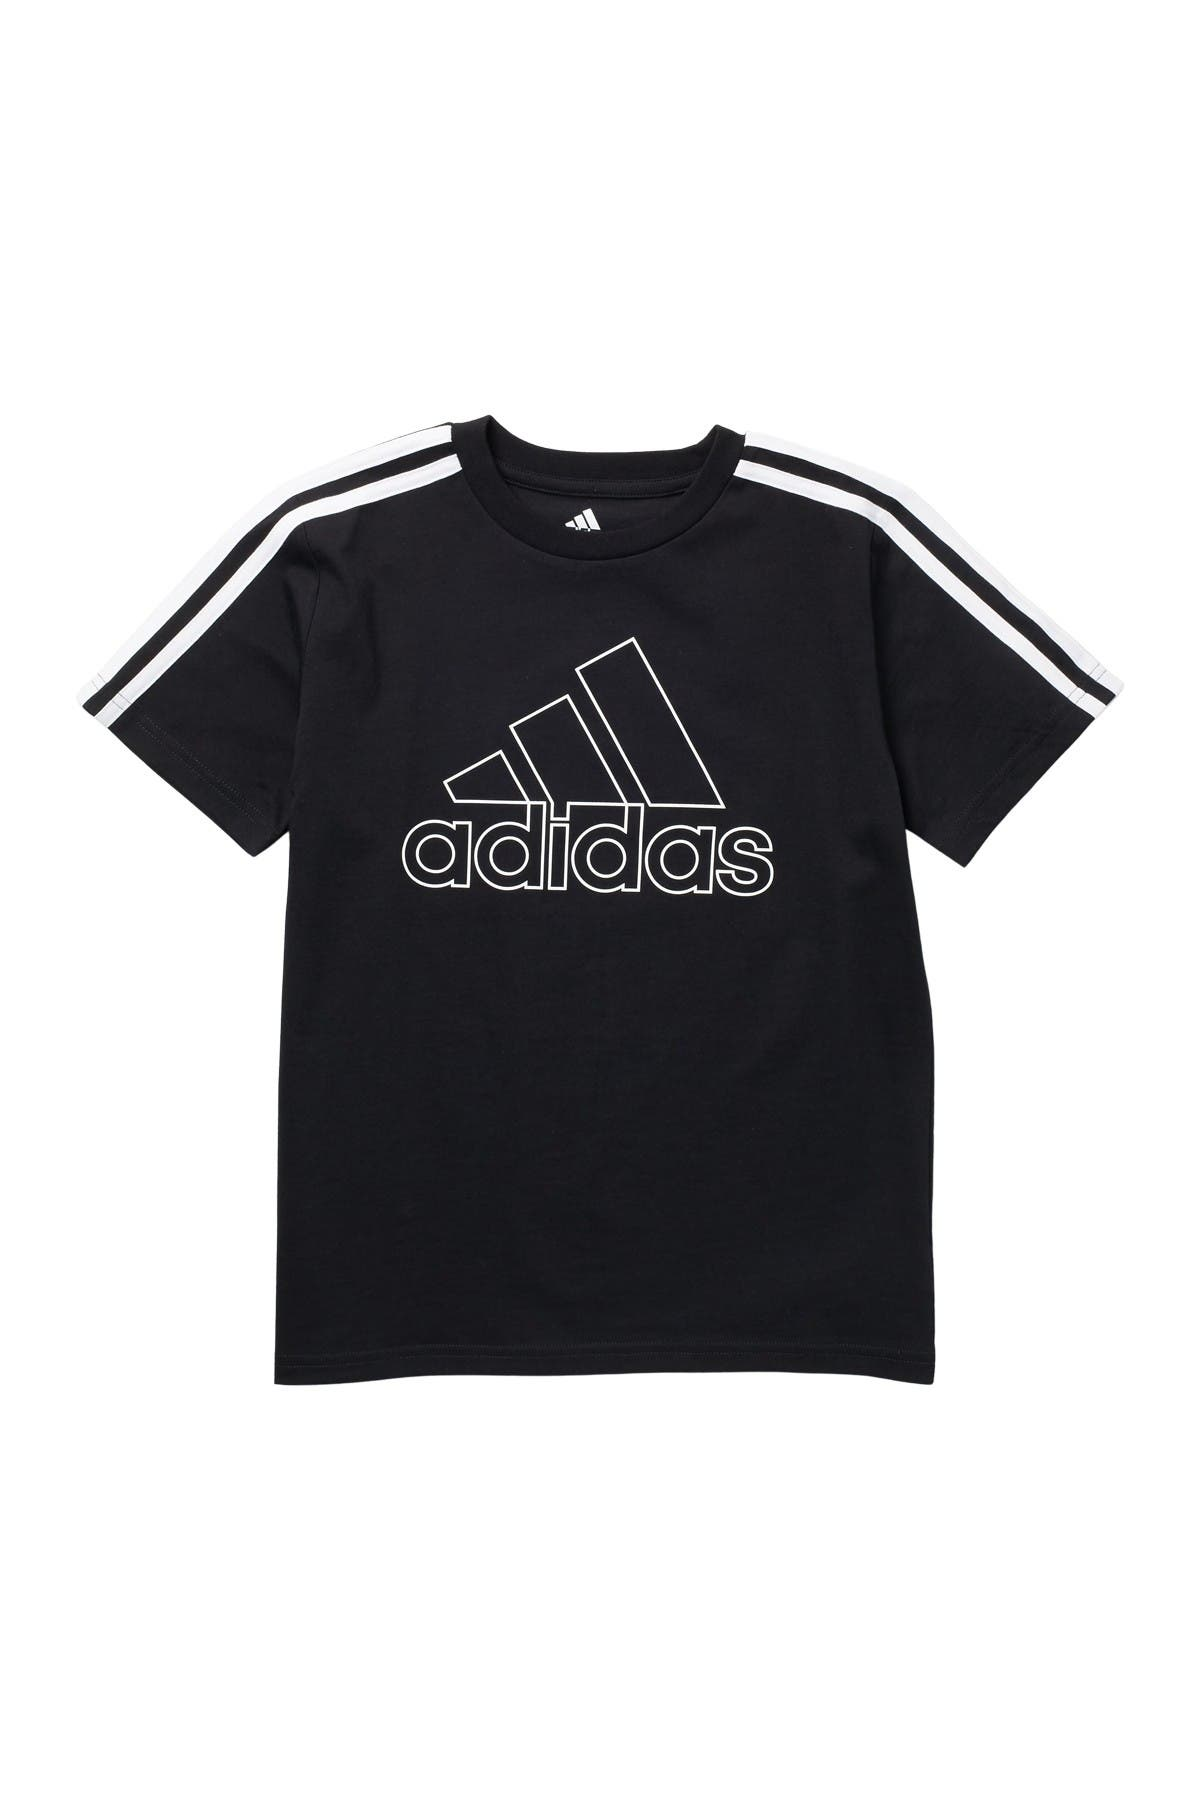 Image of adidas 3 Stripe T-Shirt